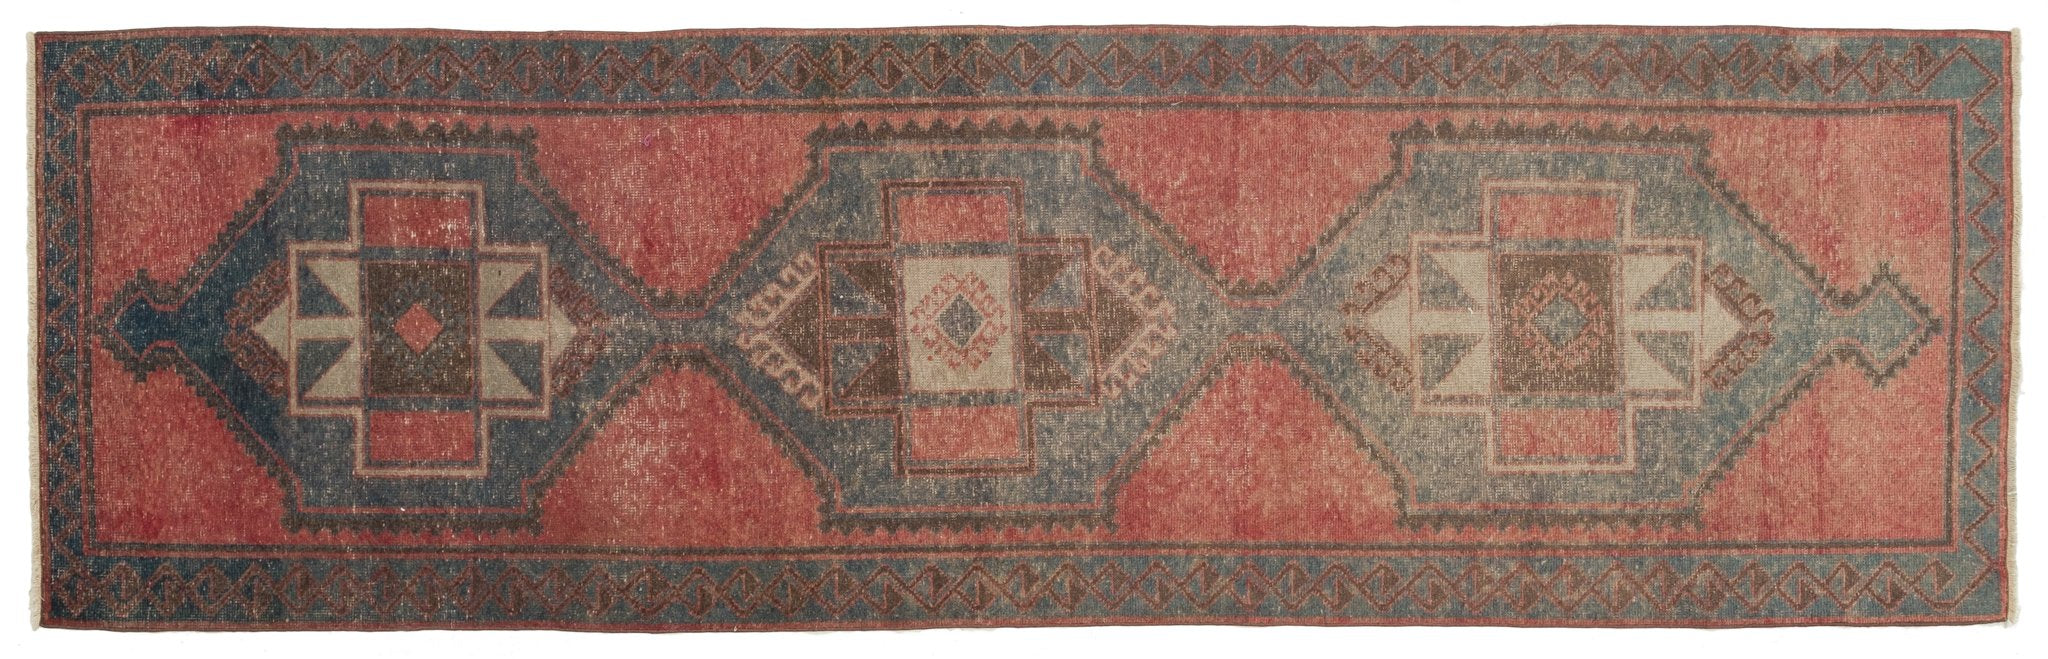 Vintage Turkish Runner Rug Bortolo